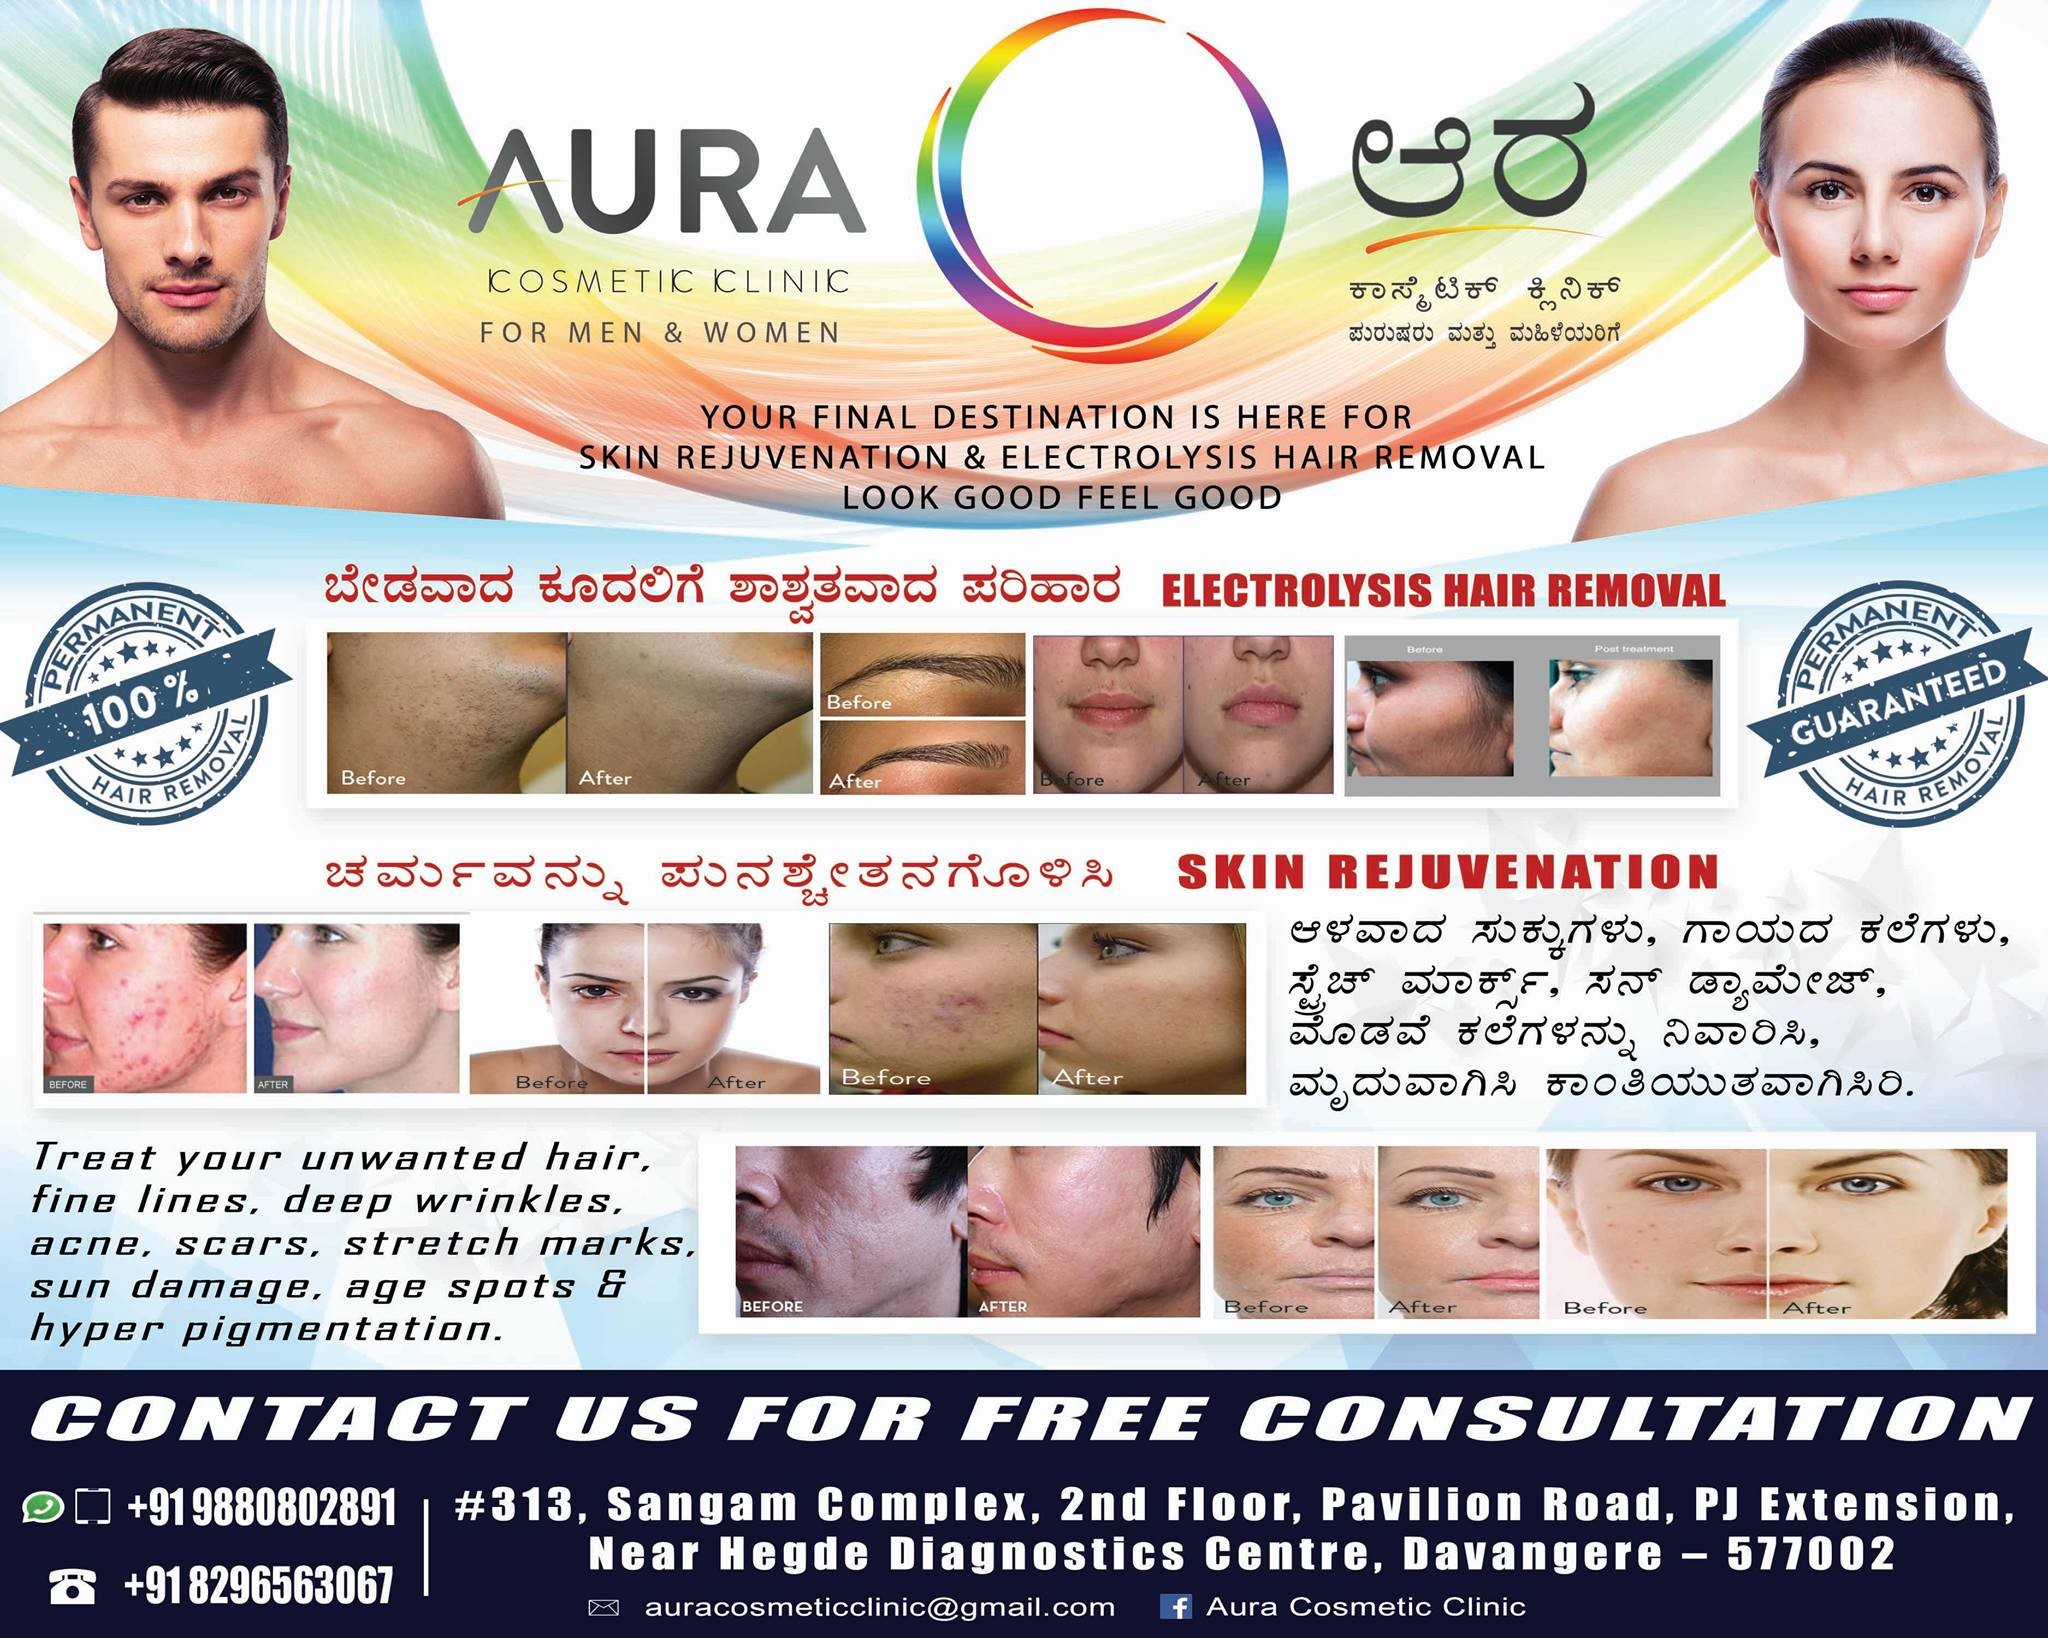 Aura Cosmetic Clinic